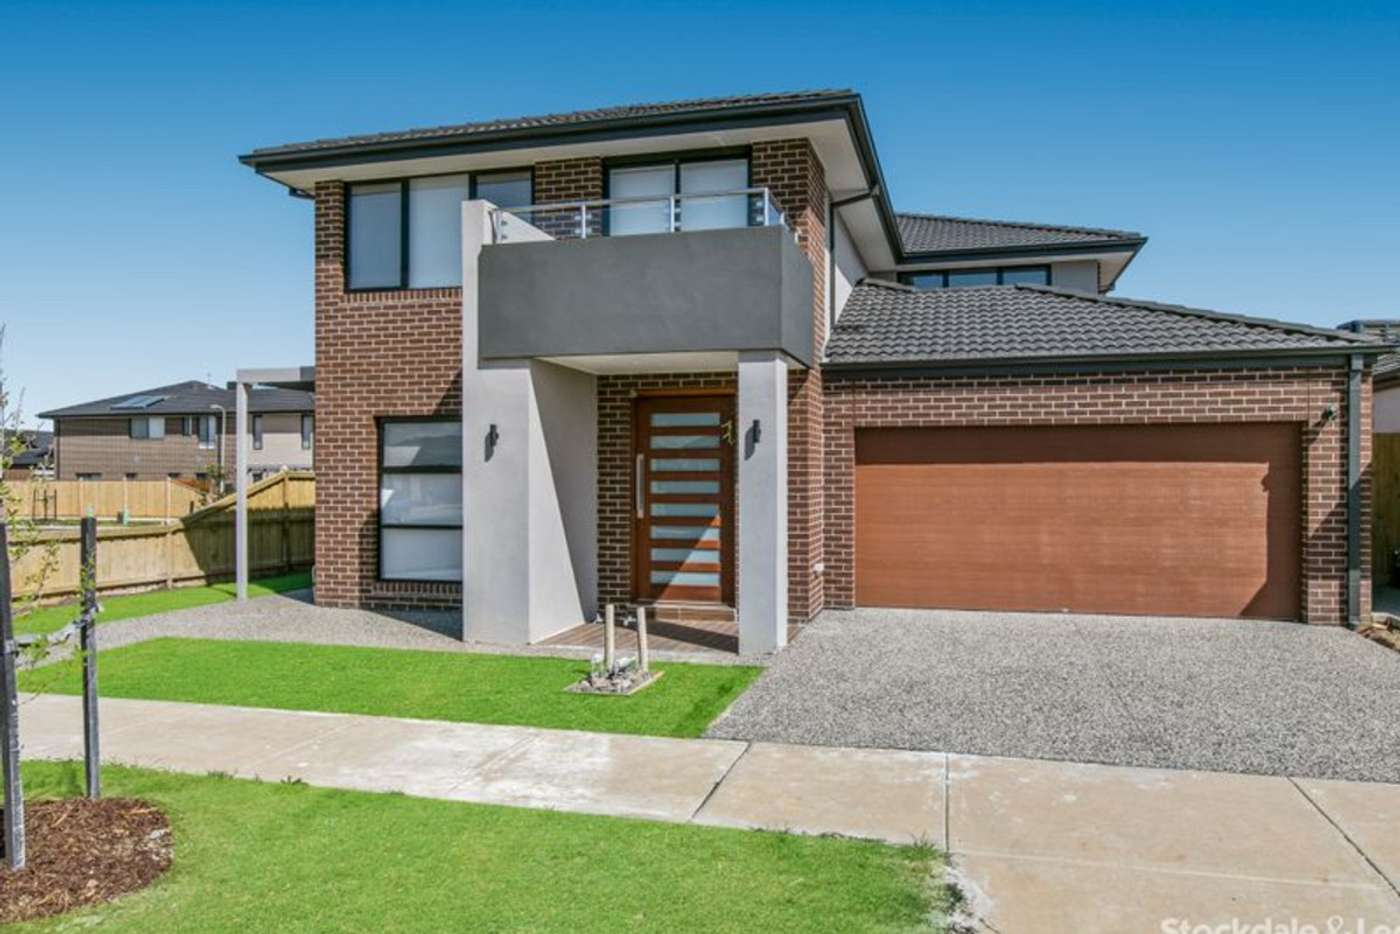 Main view of Homely house listing, 1 Chianina Lane, Clyde North VIC 3978